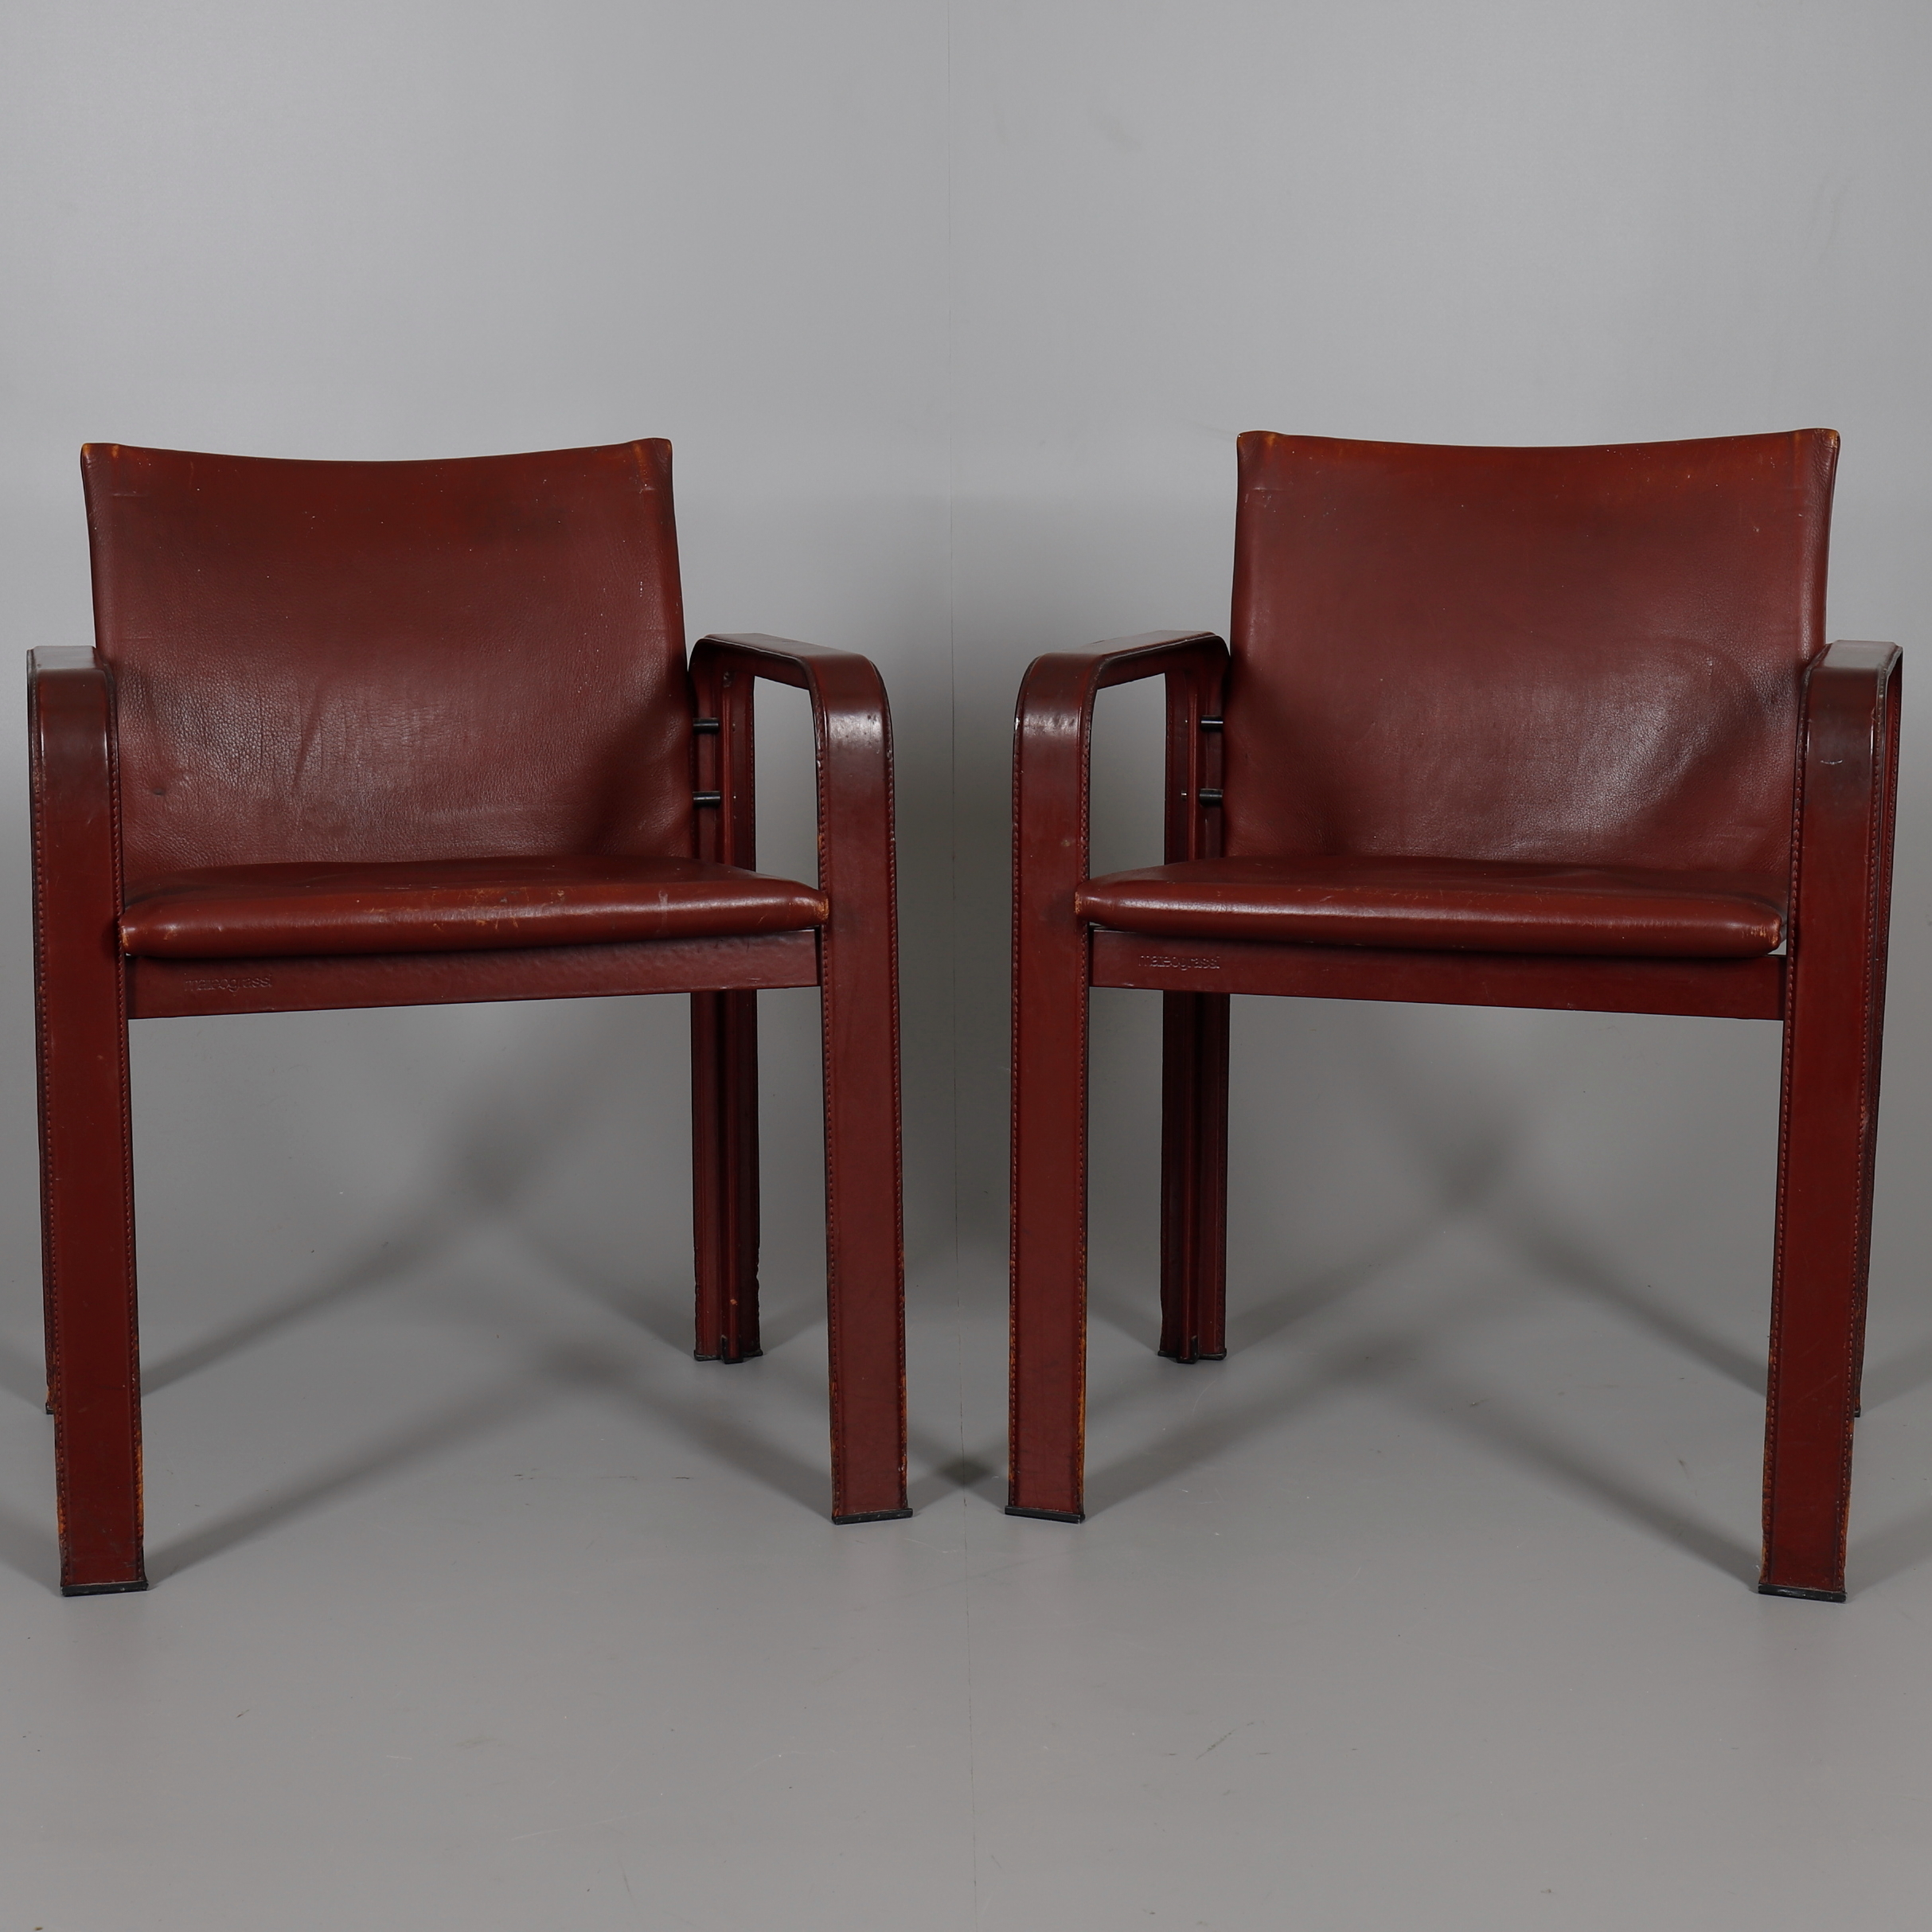 MATTEO GRASSI, A PAIR OF LEATHER ARMCHAIRS. Furniture   Armchairs U0026 Chairs    Auctionet